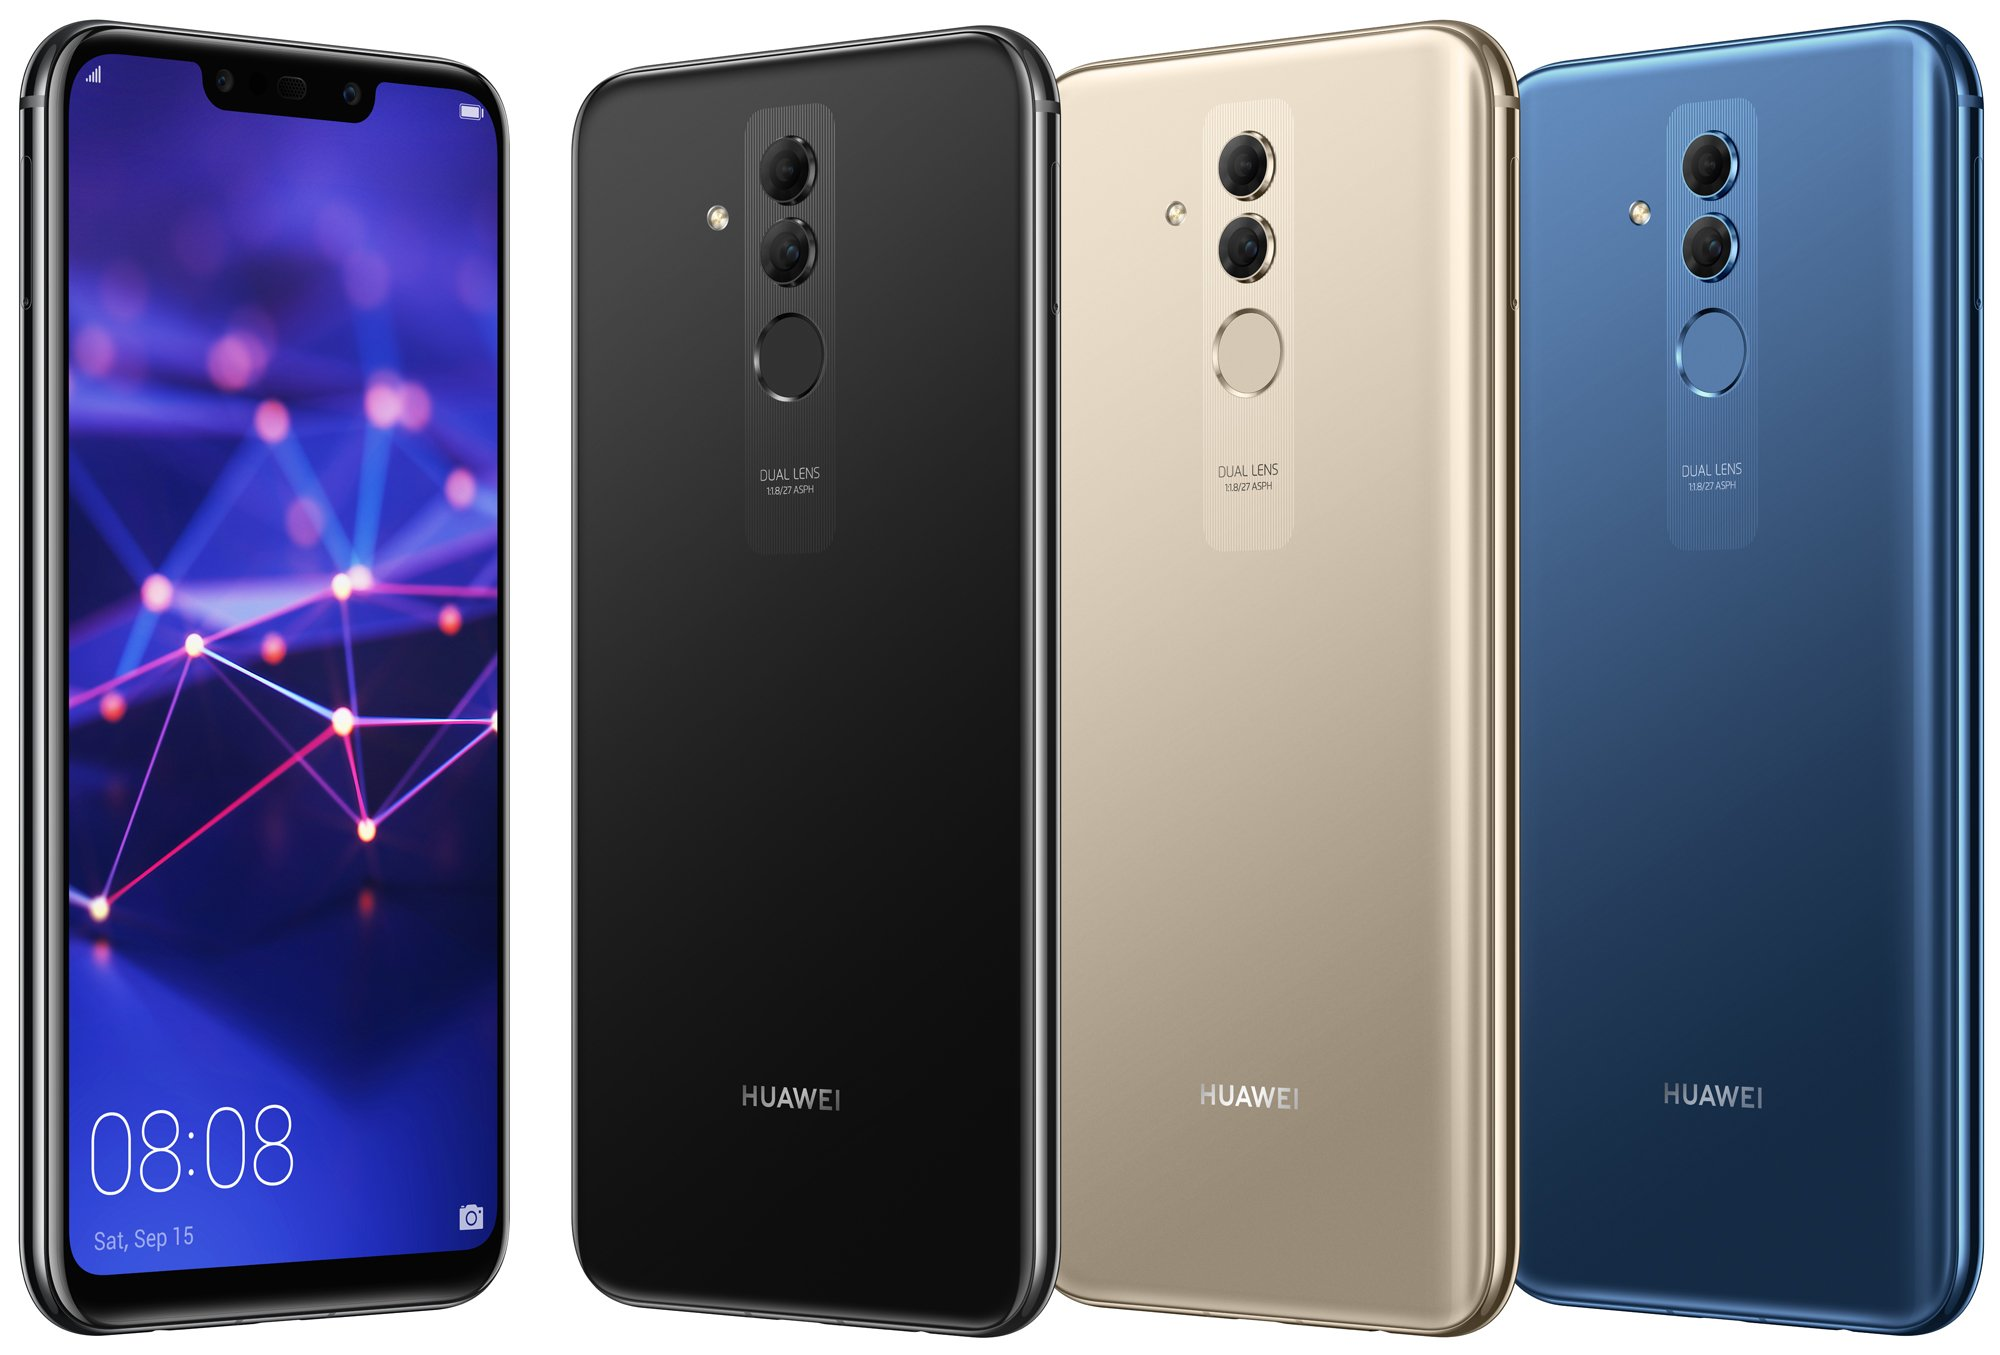 Huawei confirms the Mate 20 series will feature 7nm Kirin 980 chipset 3